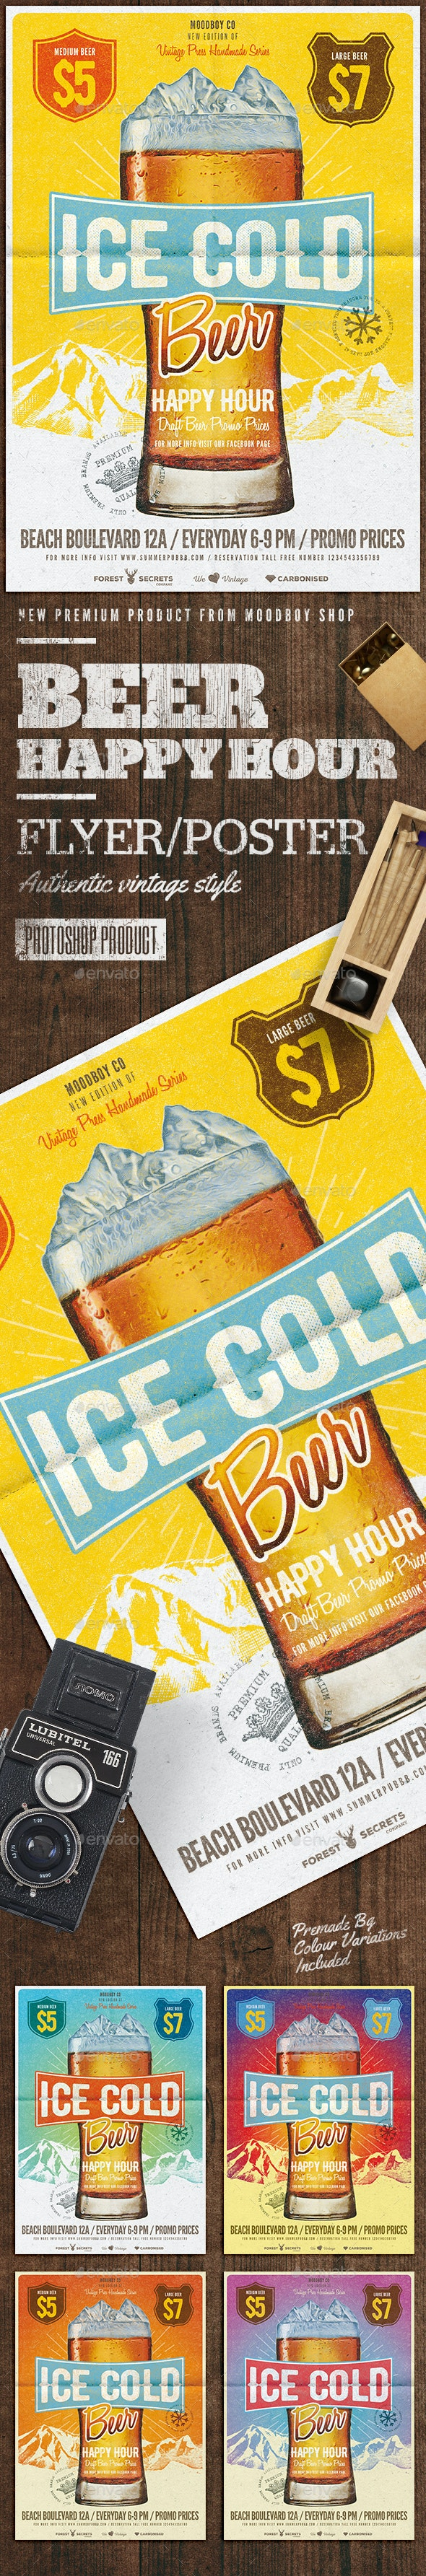 Cold Beer Happy Hour Flyer/Poster - Flyers Print Templates